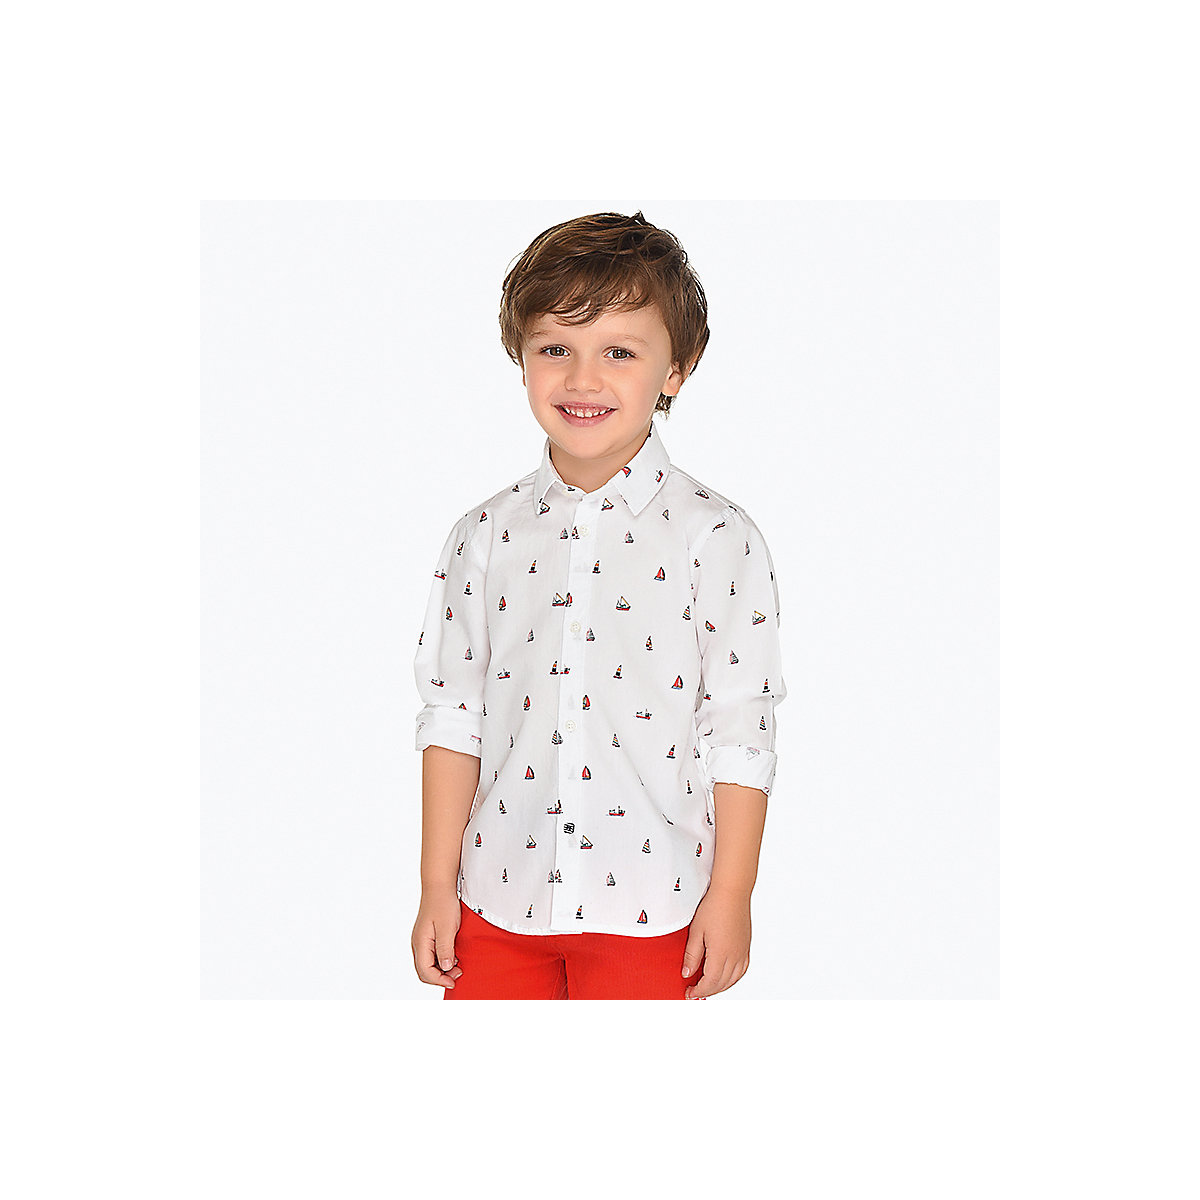 Blouses & Shirts MAYORAL 10689076 Children s Clothing shirt with long sleeve for a boy natural materials stylish slash neck long sleeve gray backless women s t shirt